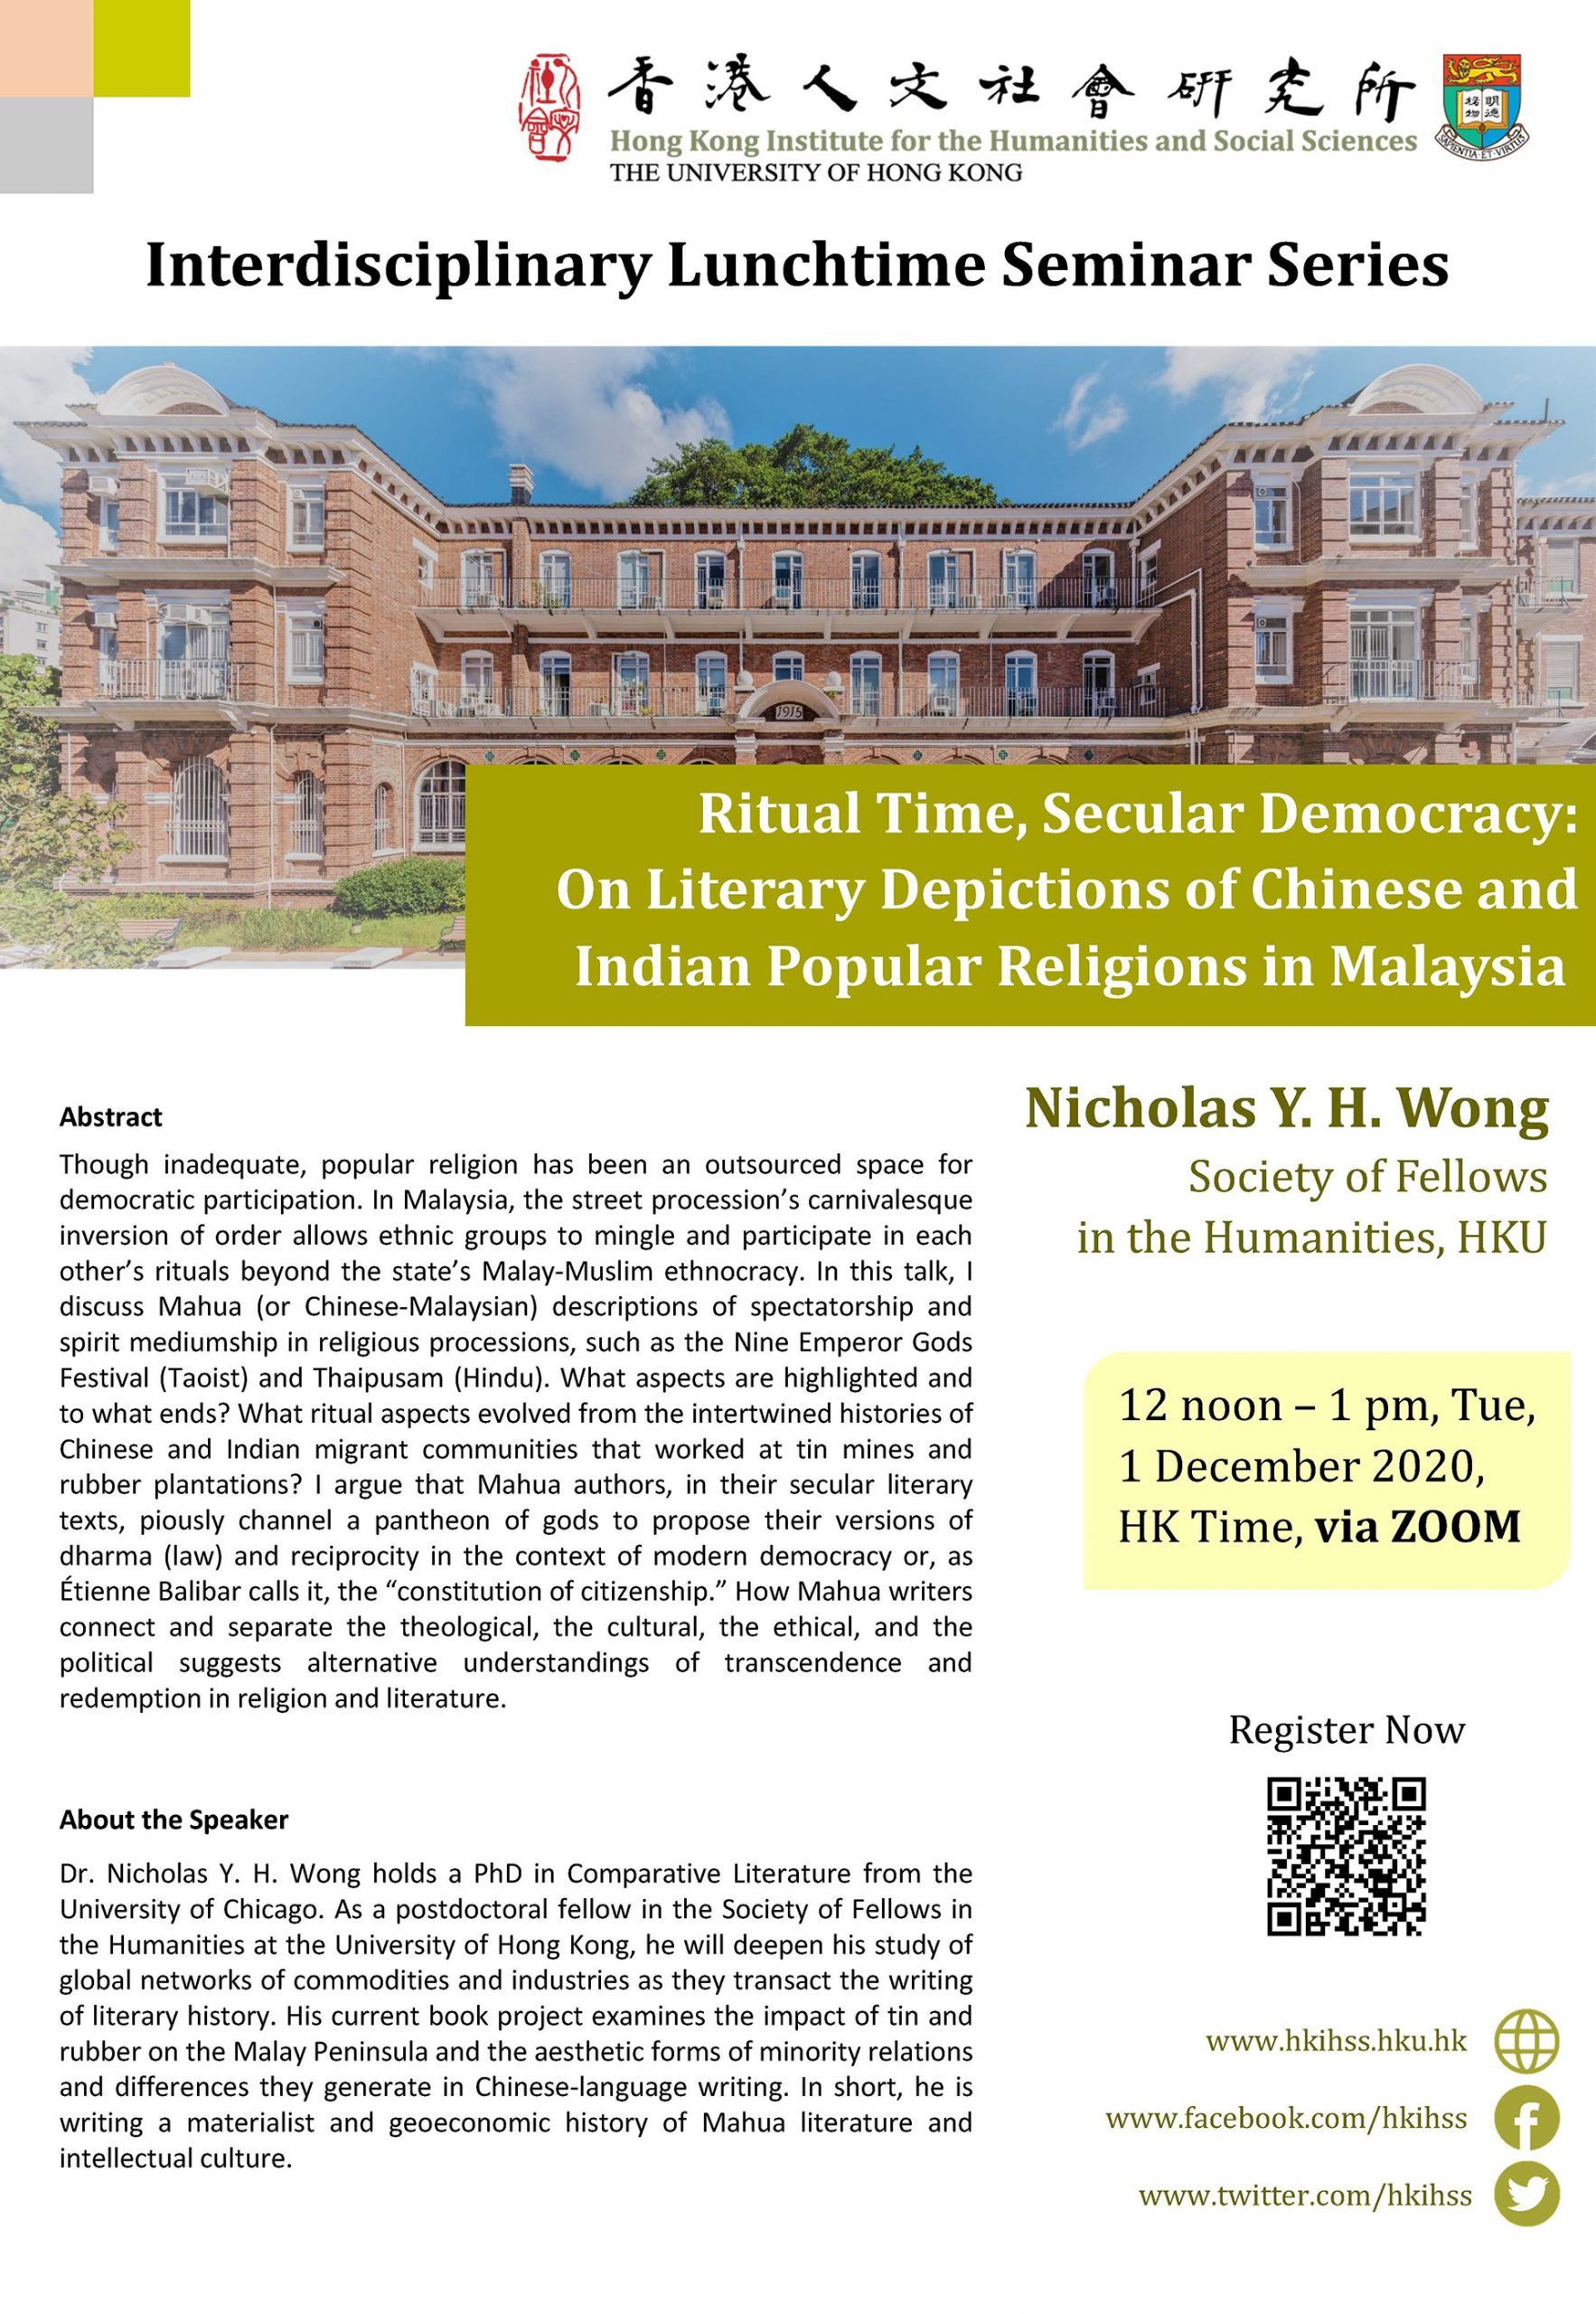 """Interdisciplinary Lunchtime Seminar on """"Ritual Time, Secular Democracy: On Literary Depictions of Chinese and Indian Popular Religions in Malaysia"""" by Dr. Nicholas Y. H. Wong (December 1, 2020)"""